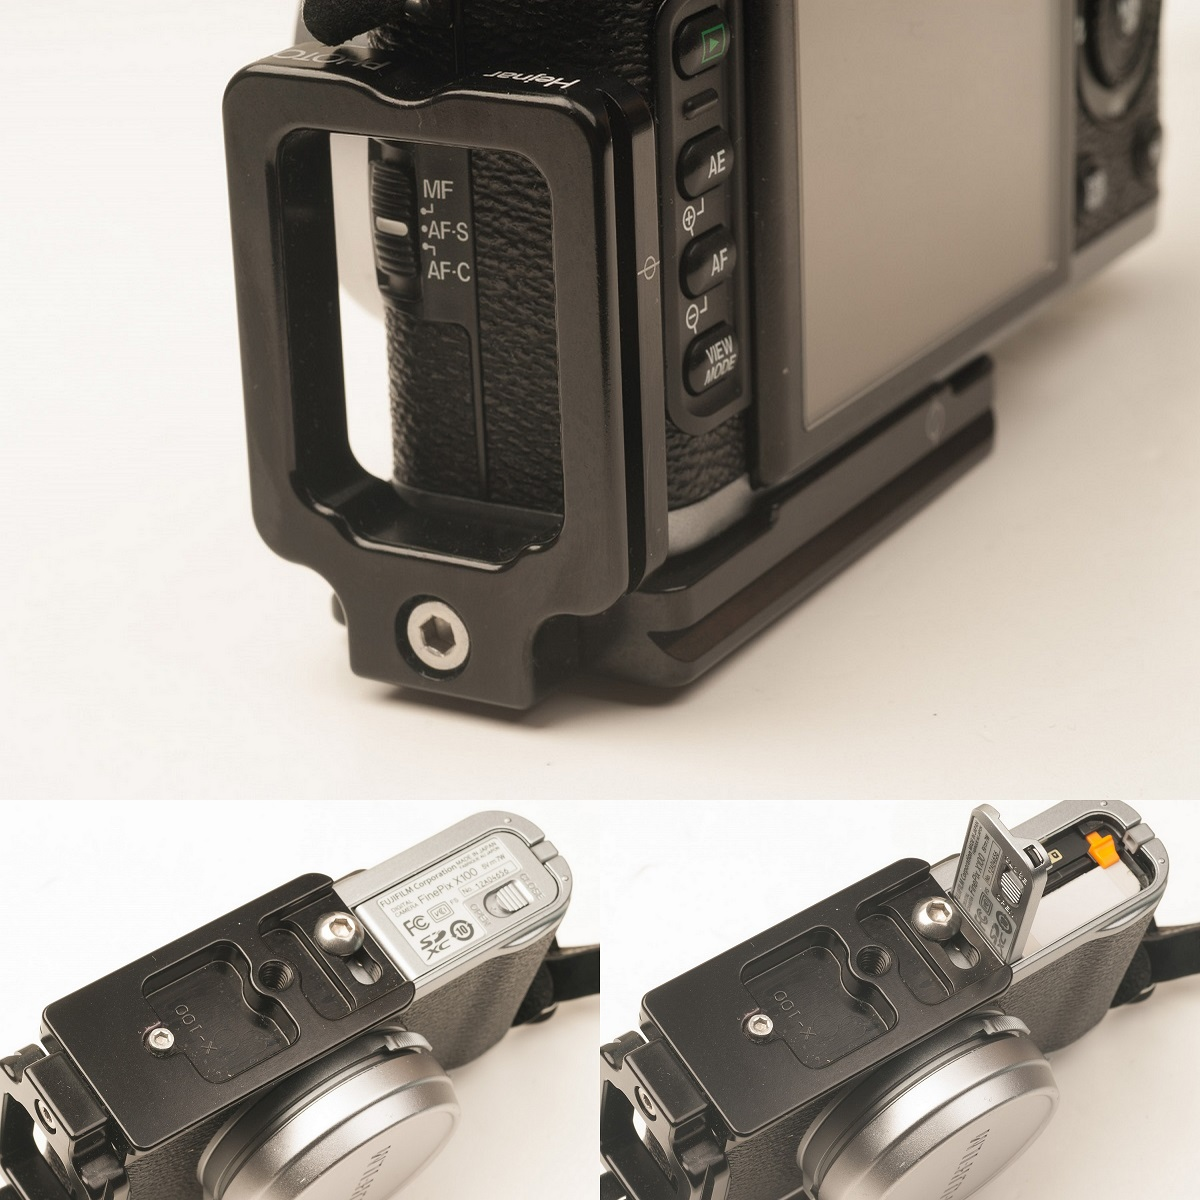 Hejnar PHOTO X100 L Bracket on Fuji X100 side and bottom details